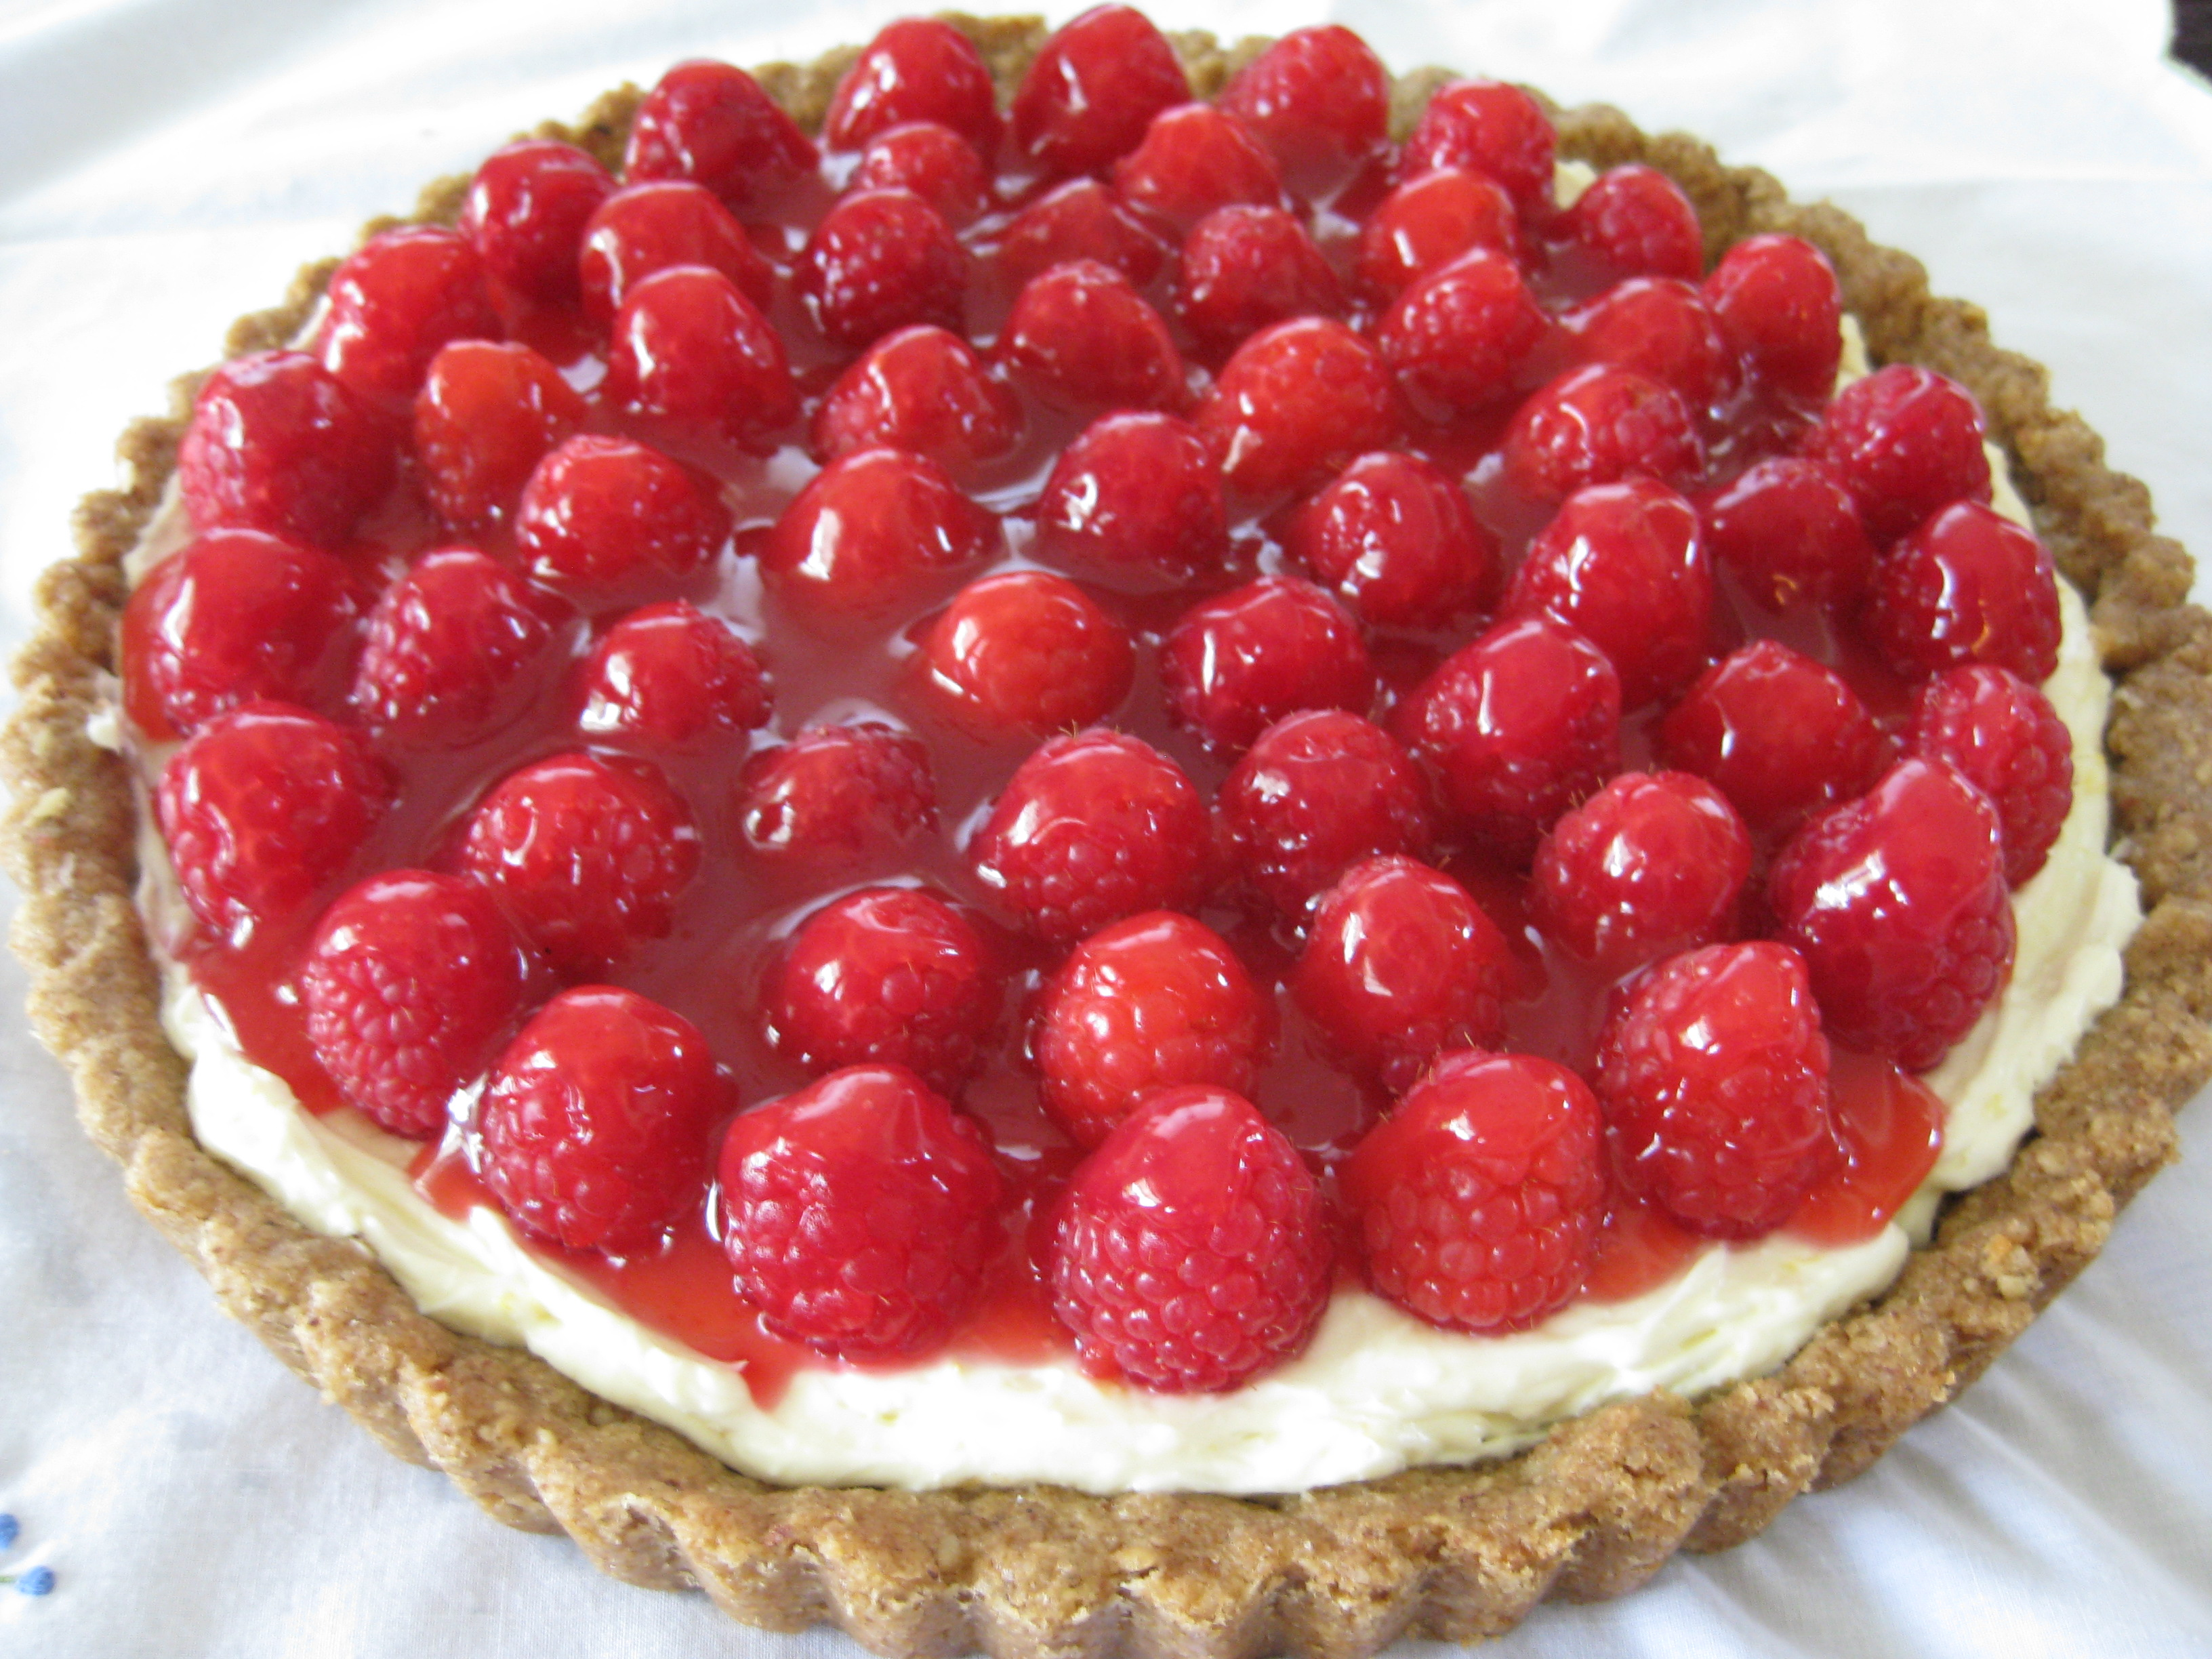 Raspberry Tart Recipe on Food52